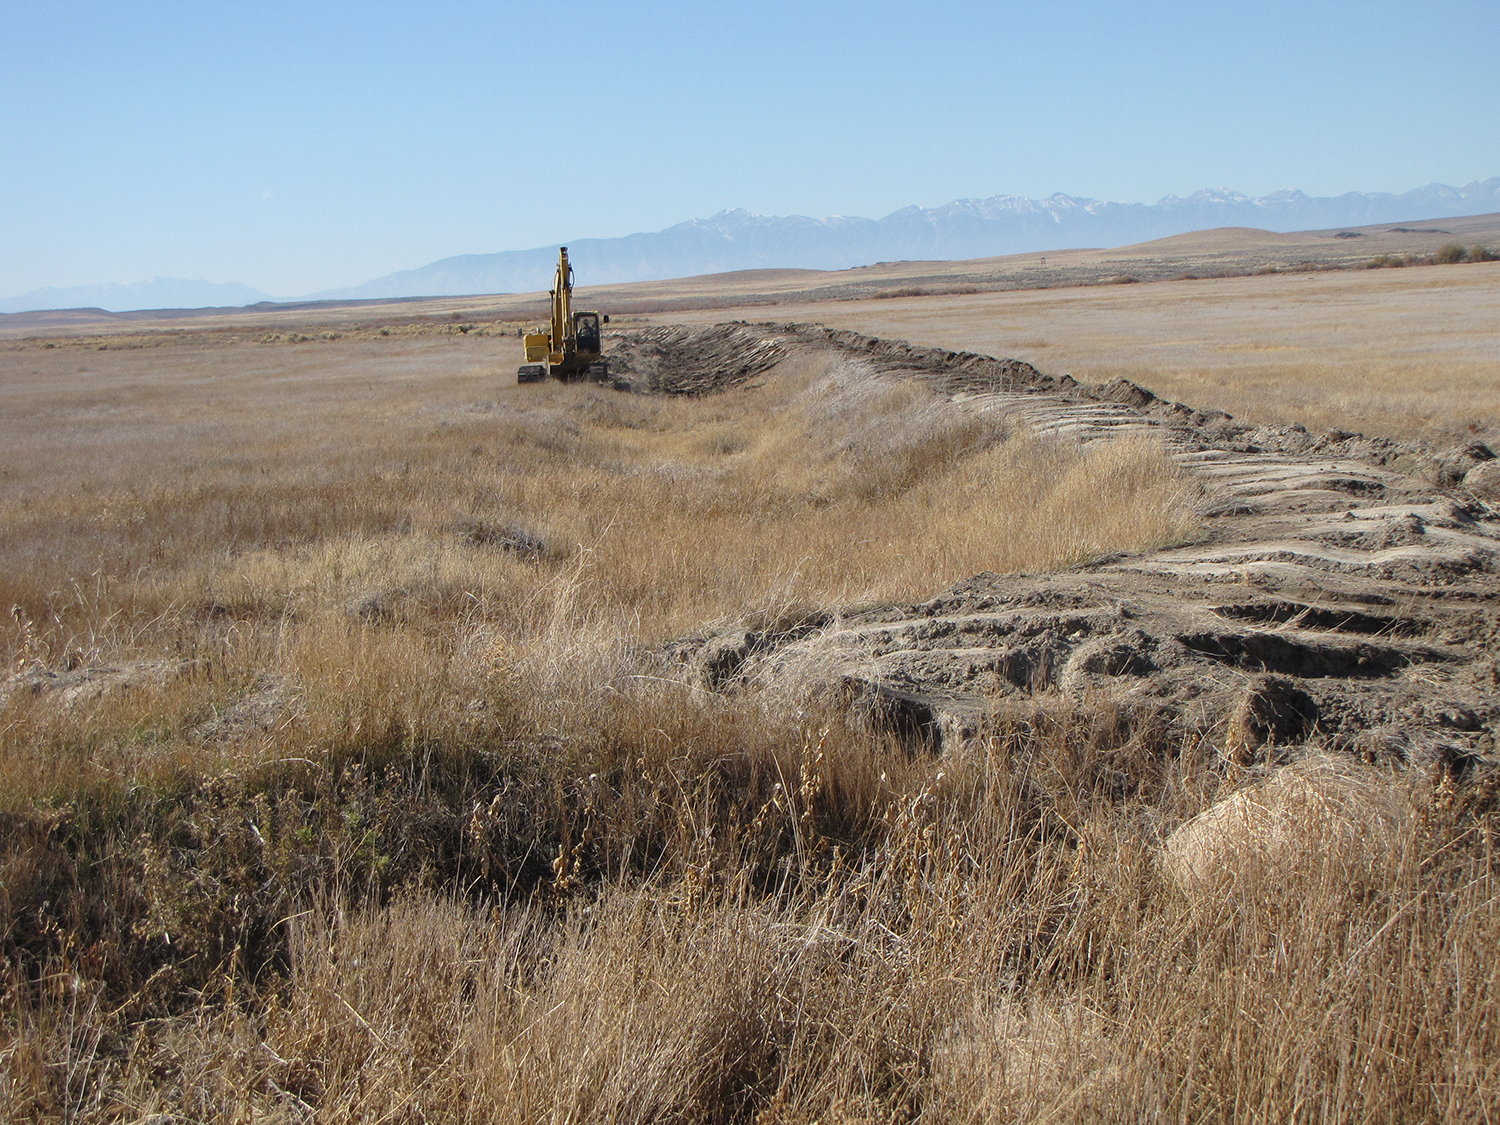 Brindly Pond Dike Removal Project